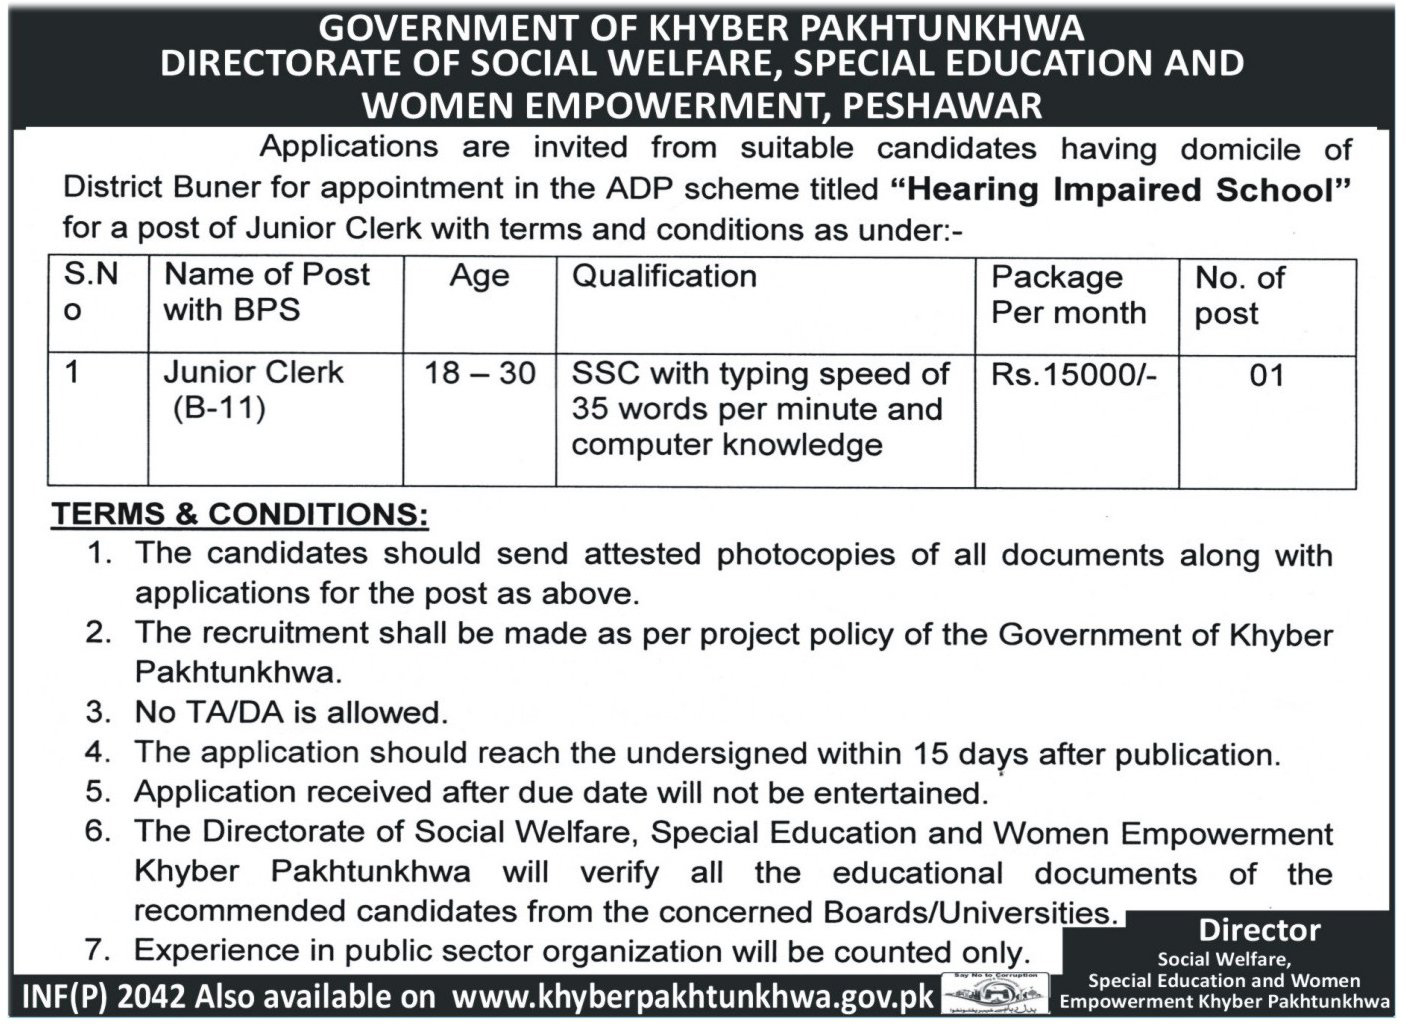 Bps-11 jobs in Social Welfare Special Education Department 3 may 2017